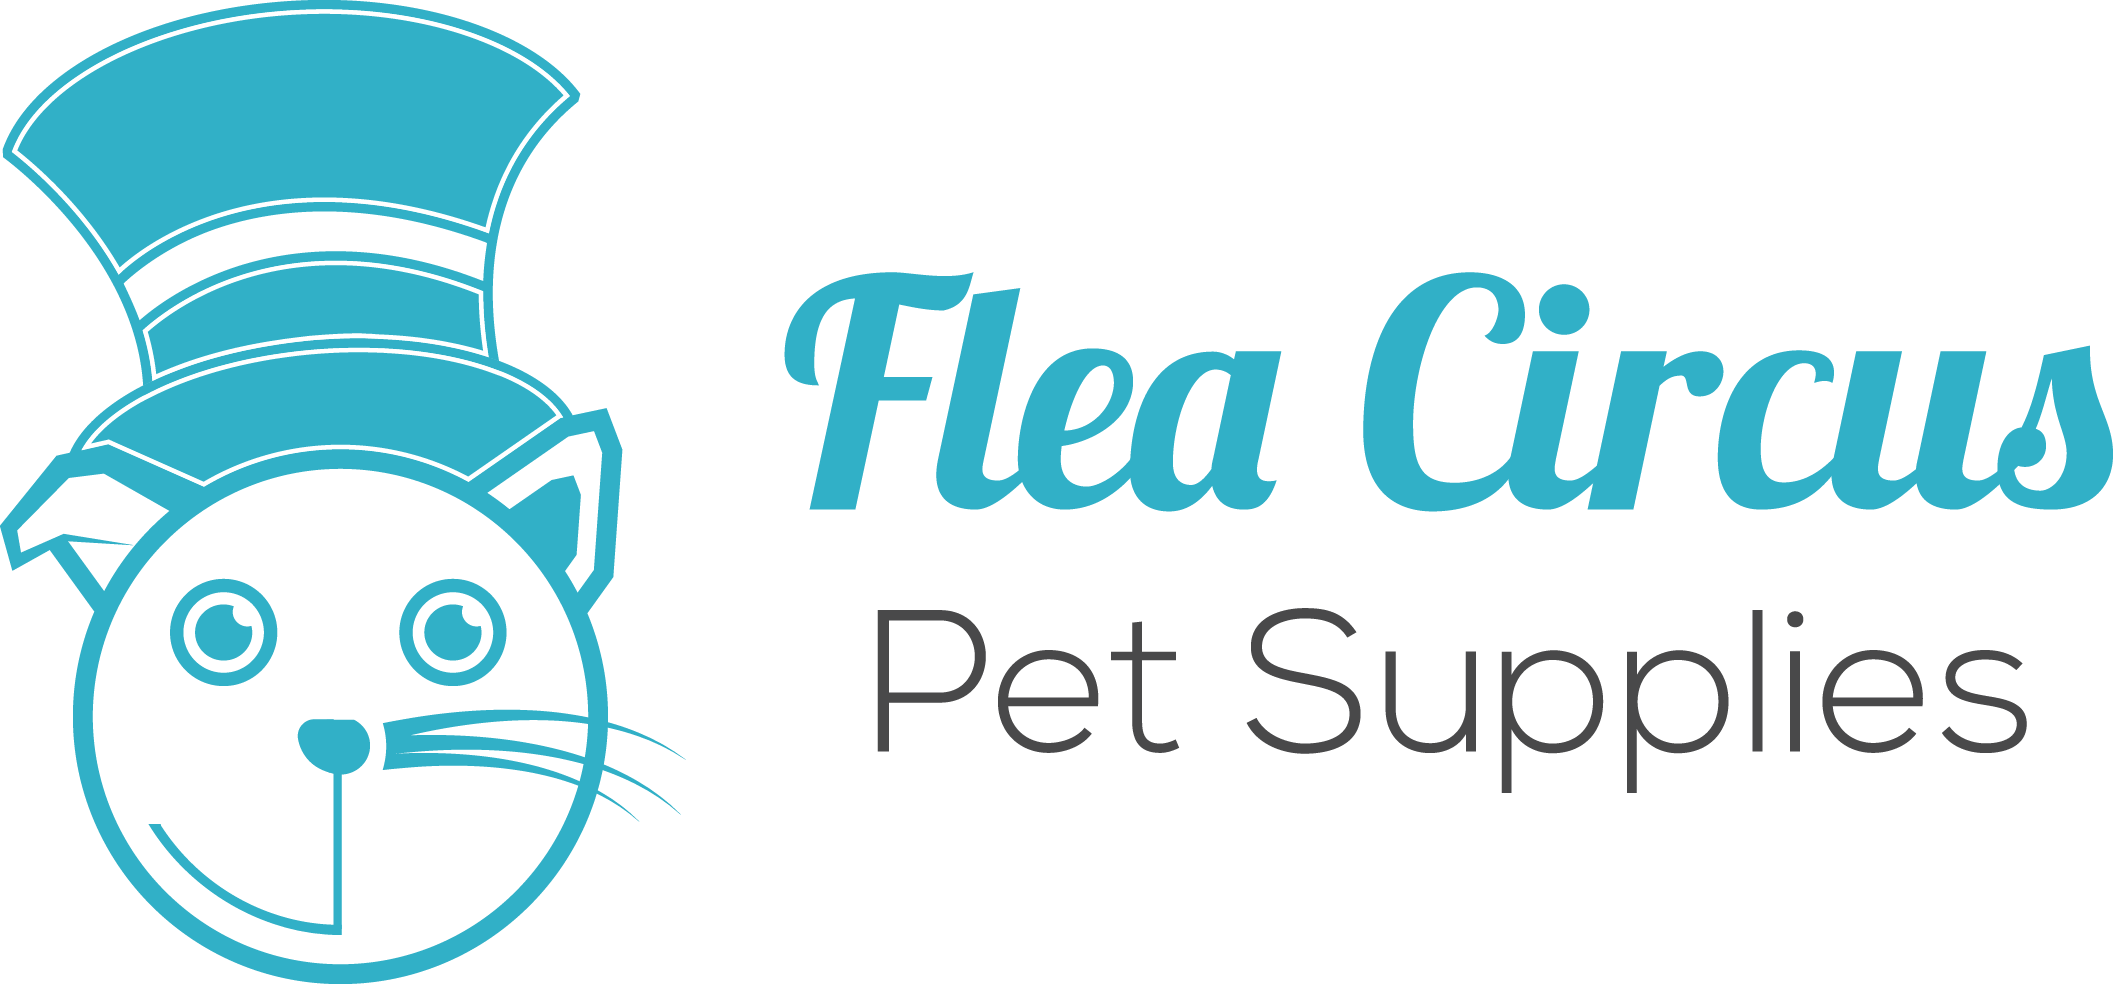 Flea Circus Pet Supplies